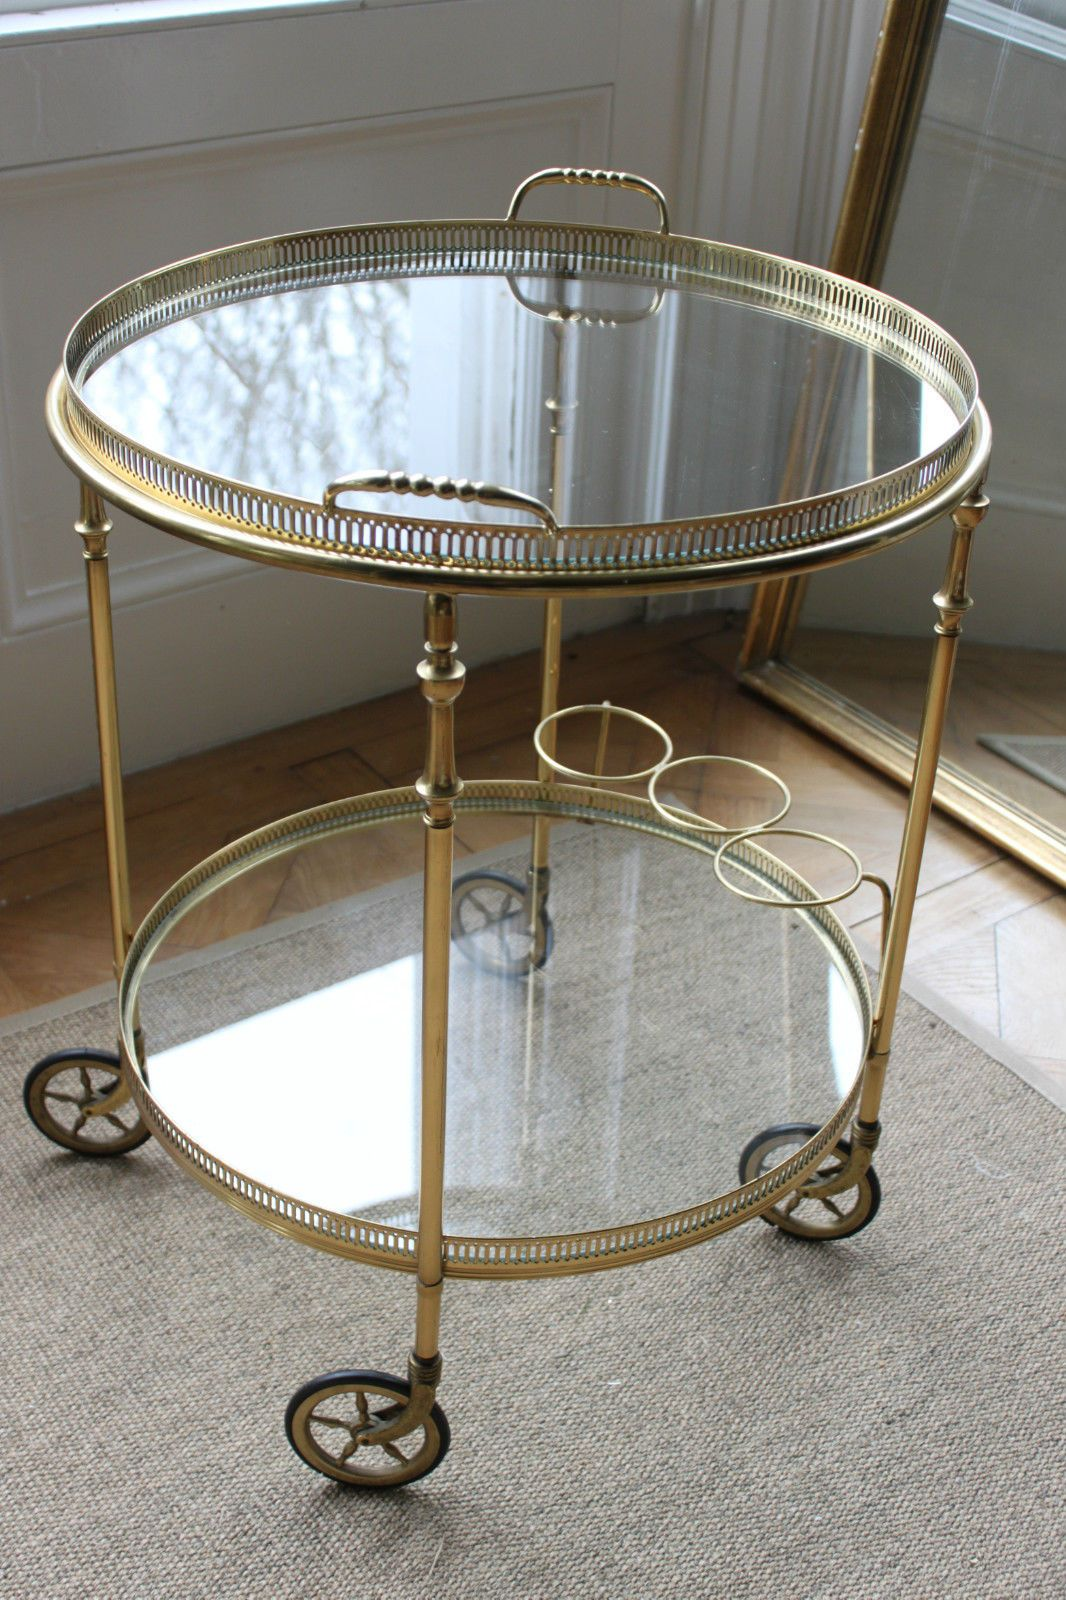 Vintage Brass French Drinks Trolley Bar Cart French Brass Drinks Trolley Vintage Brass [ 1600 x 1066 Pixel ]